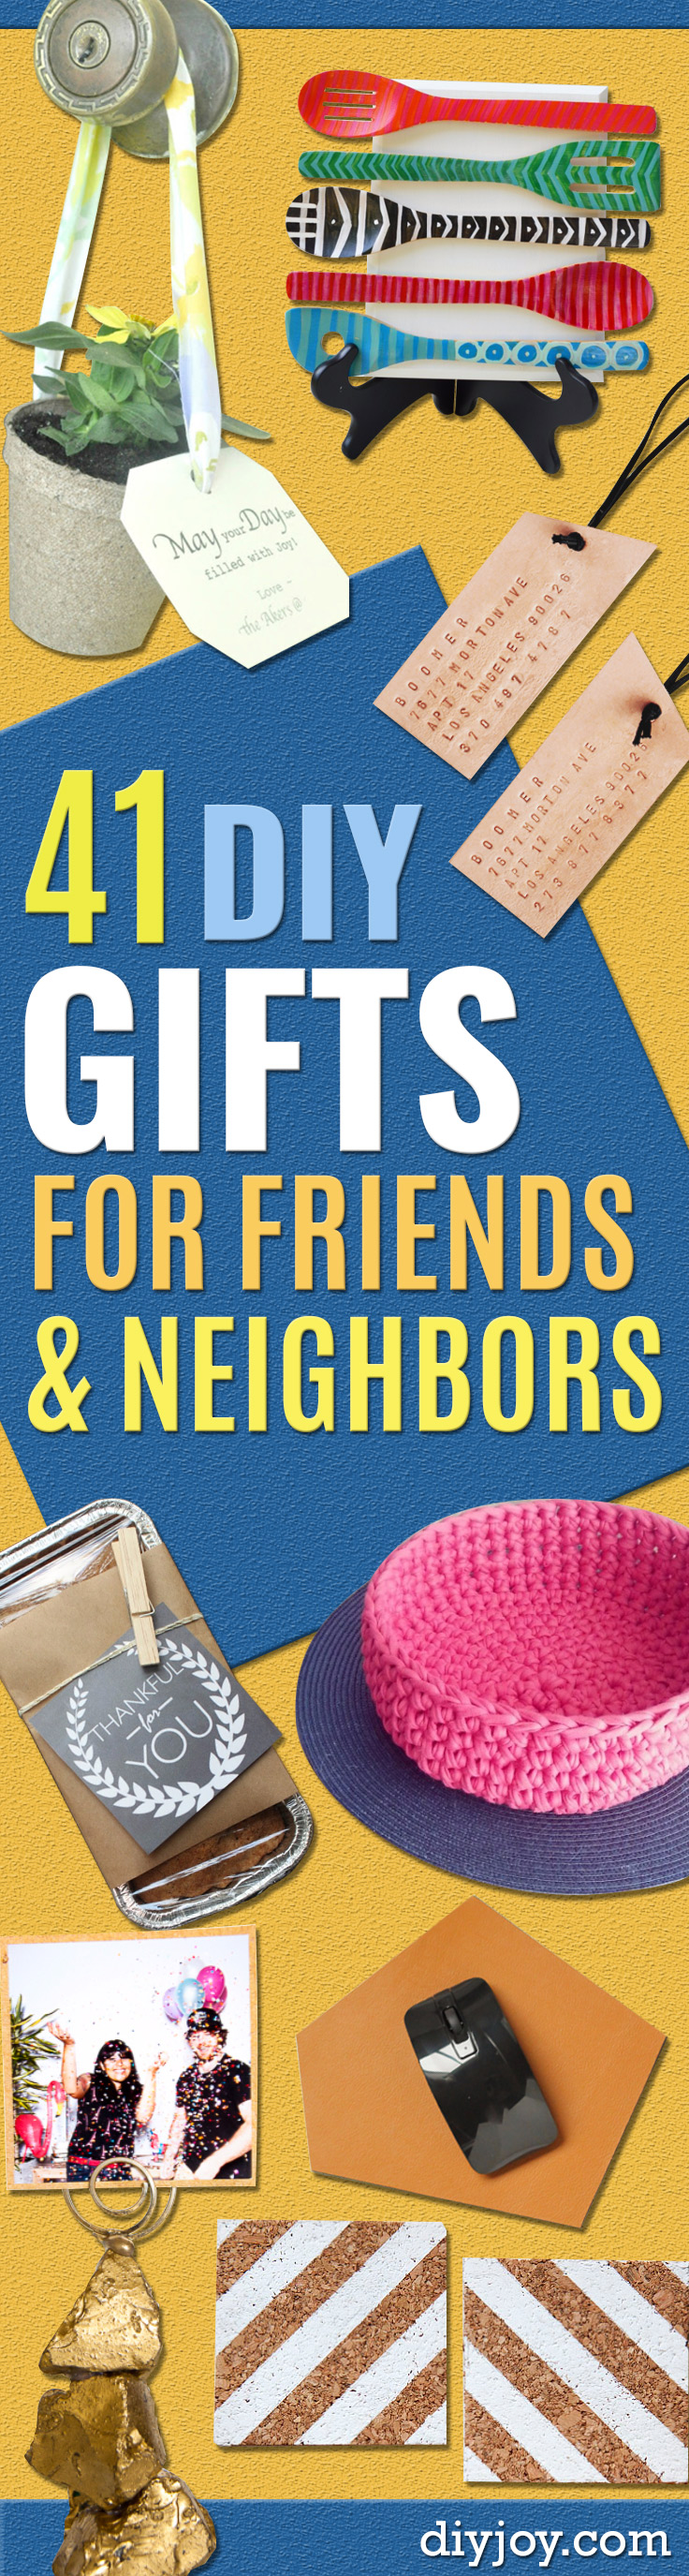 DIY Gifts for Neighbors - Cute Mason Jar Crafts, Gift Baskets and Cheap and Easy Gift Ideas to Make for Friends - Do It Yourself Projects You Can Sew and Craft That Make Awesome DIY Gifts and Homemade DIY Christmas Gifts - Presents